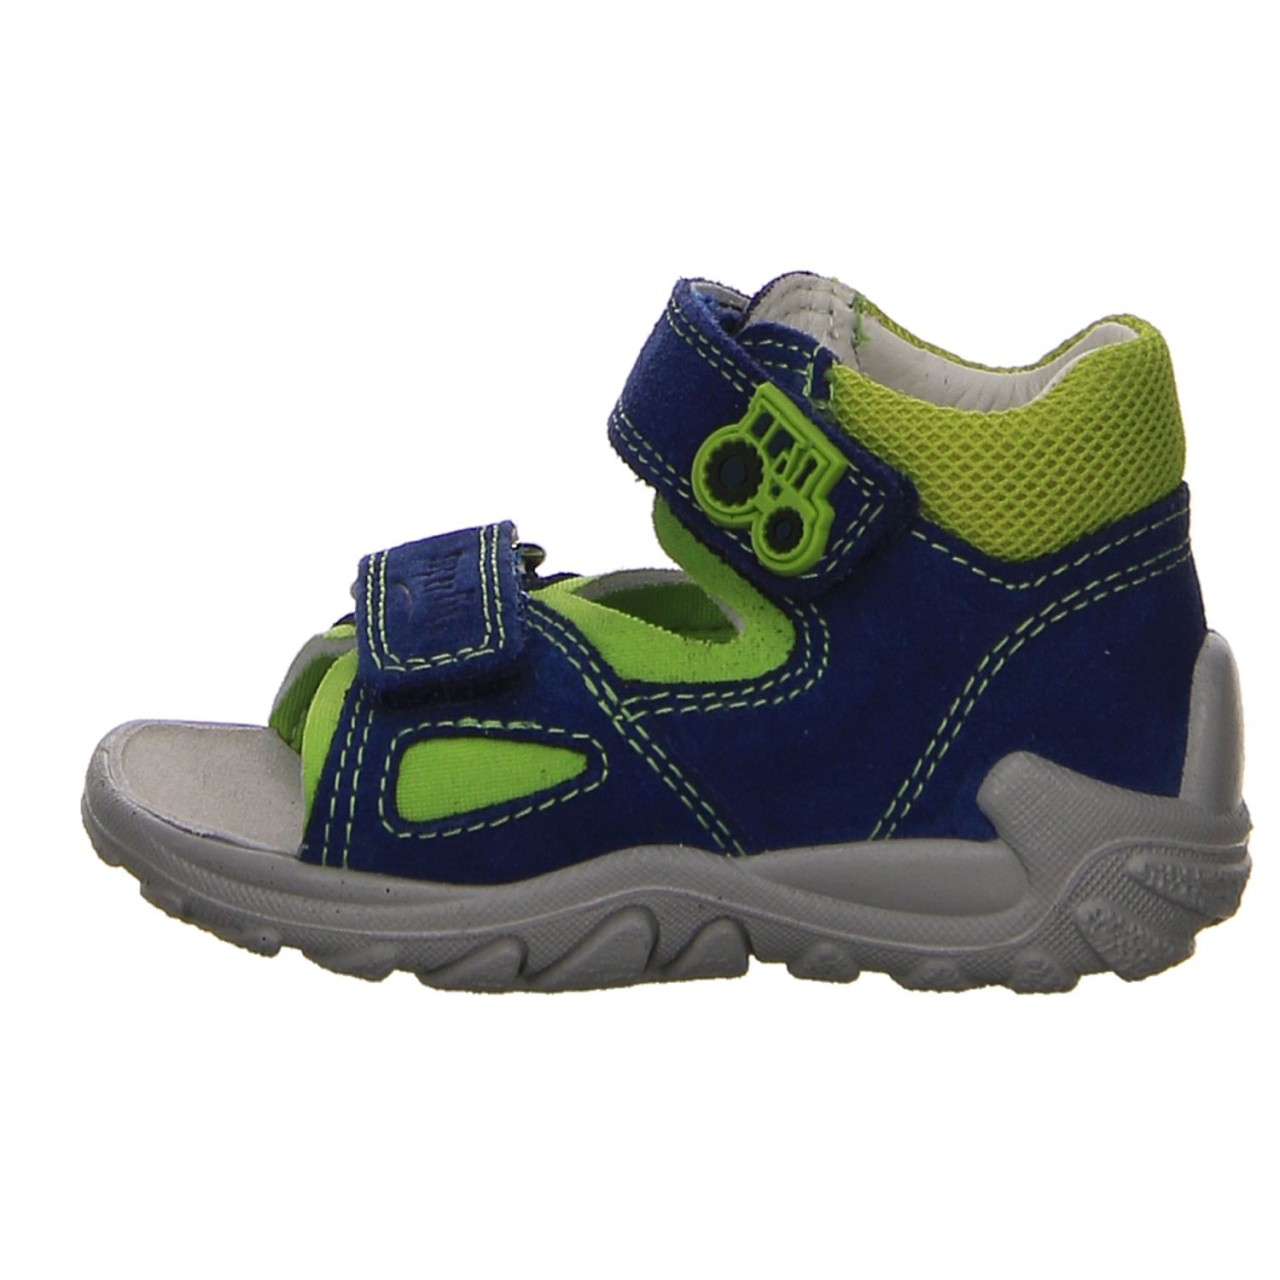 Superfit Sandalen Blau